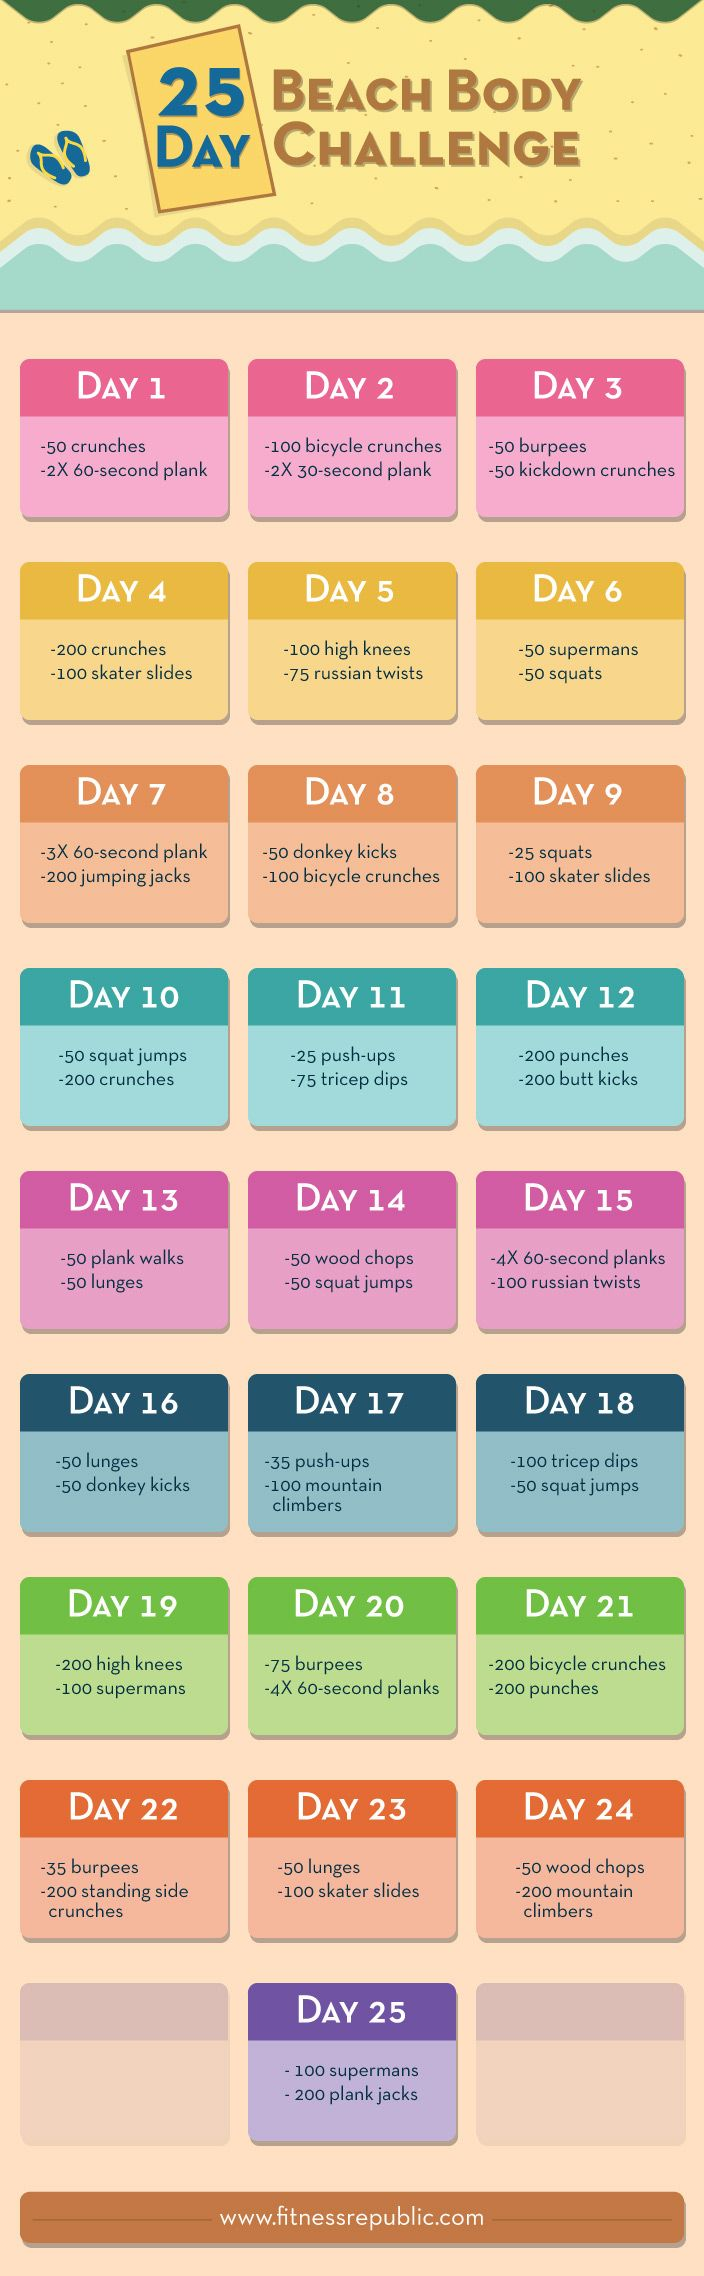 25 Day Beach Body Challenge